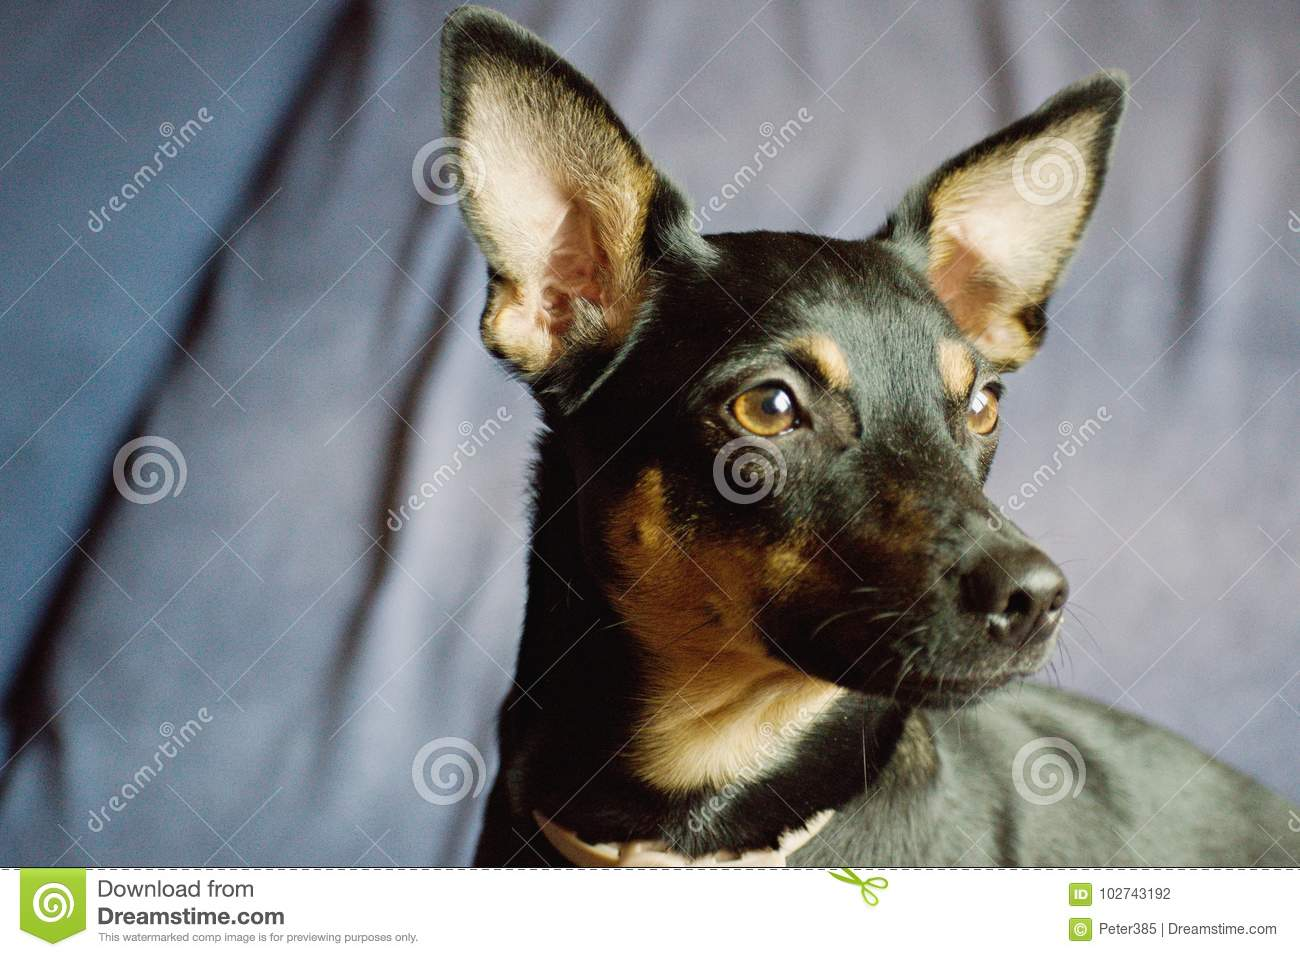 Download Pinscher stock photo. Image of cute, domestic, most - 102743192